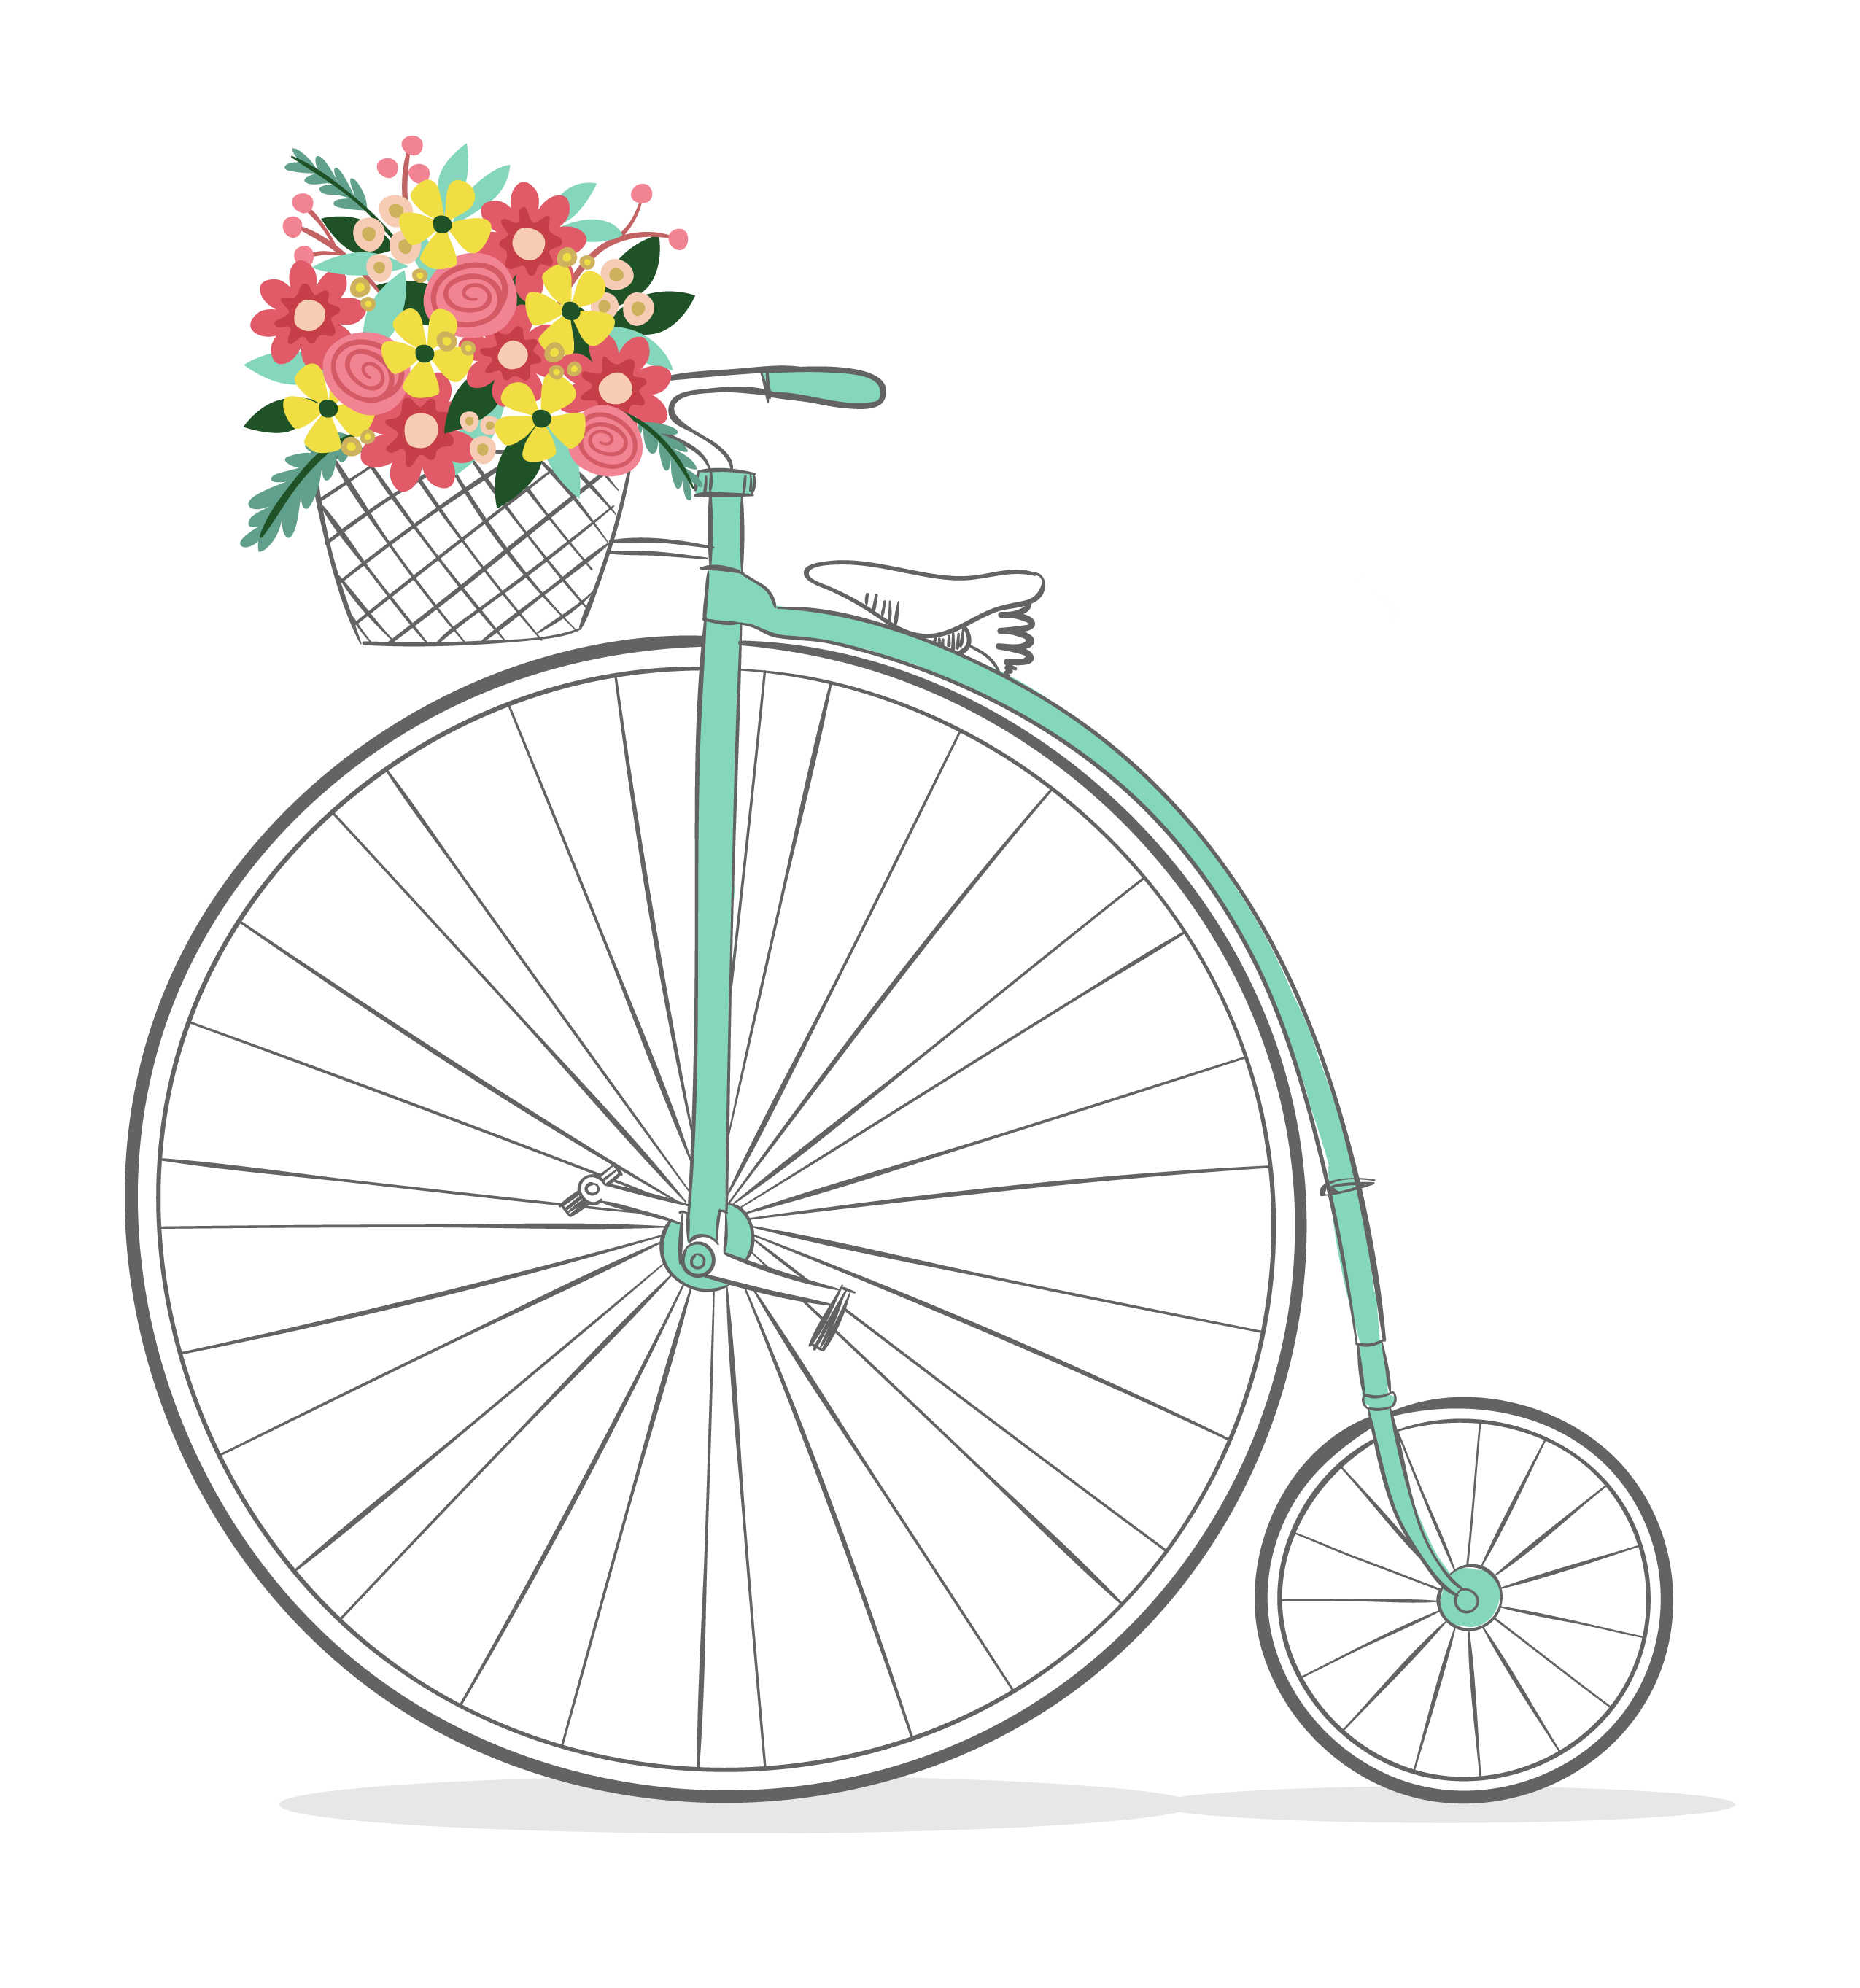 Free Romantic Bicycle Clip Art.